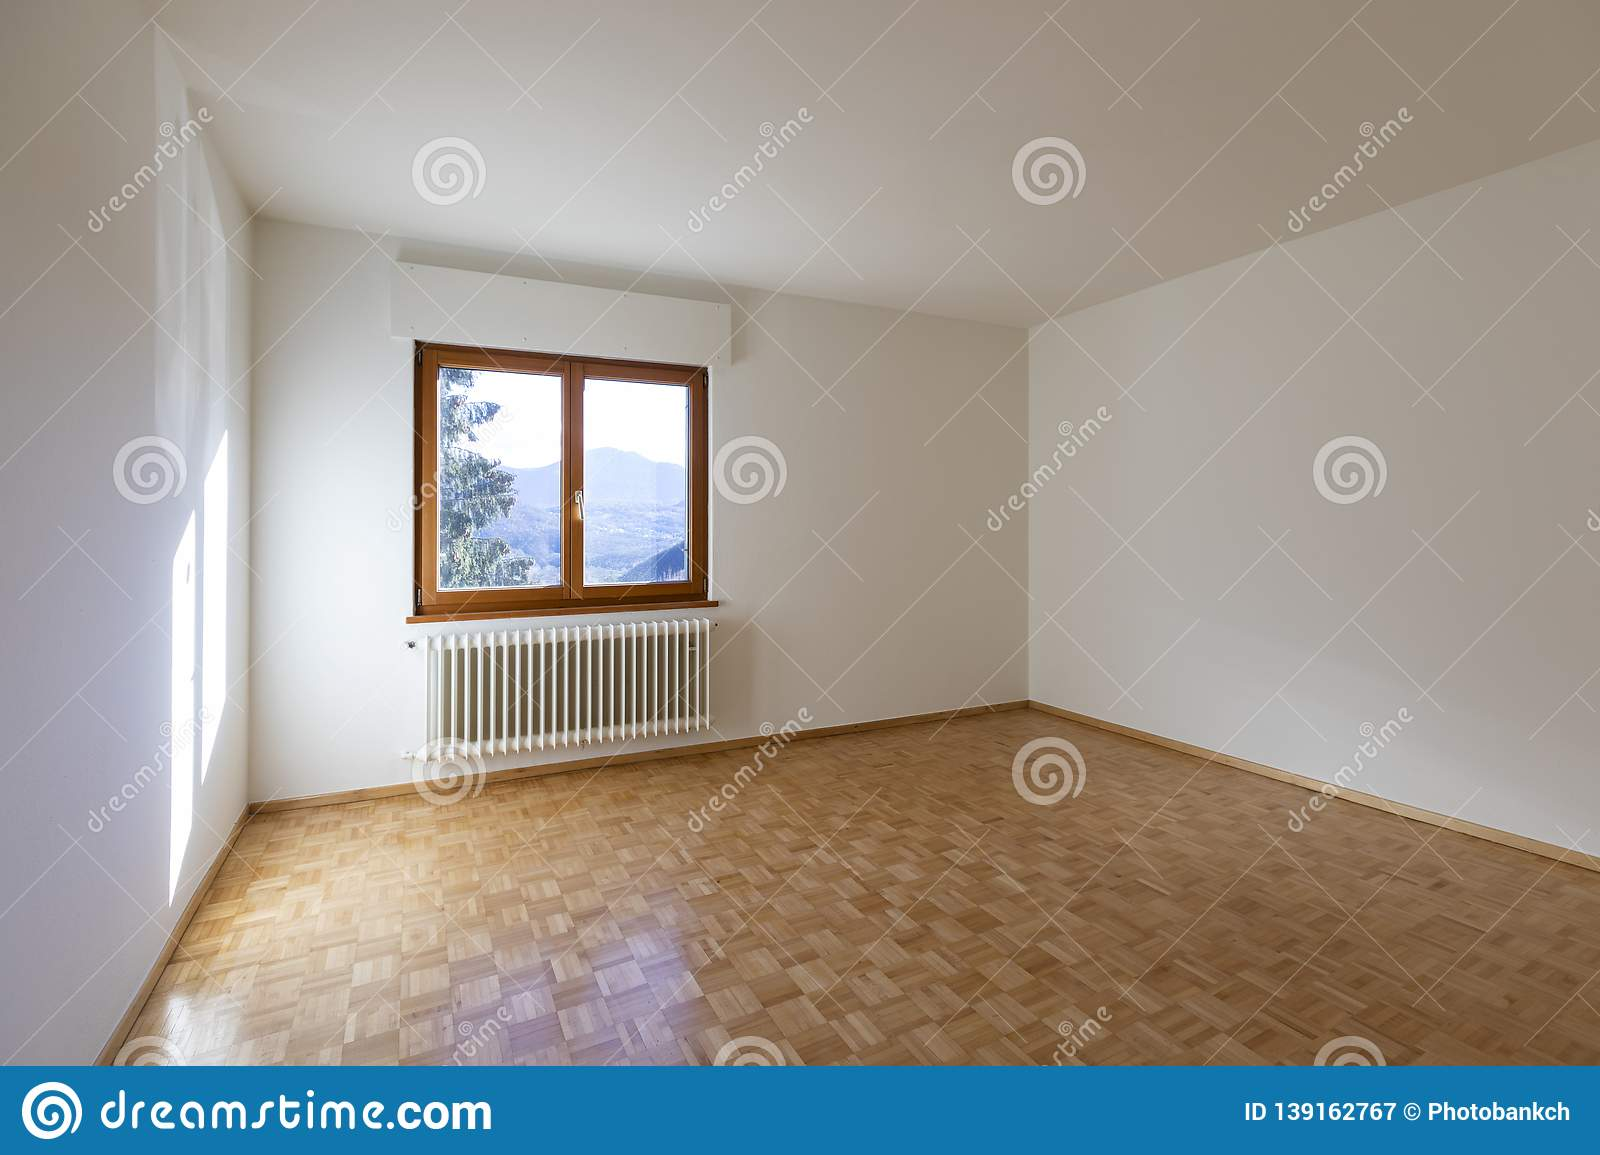 small empty room empty bedroom